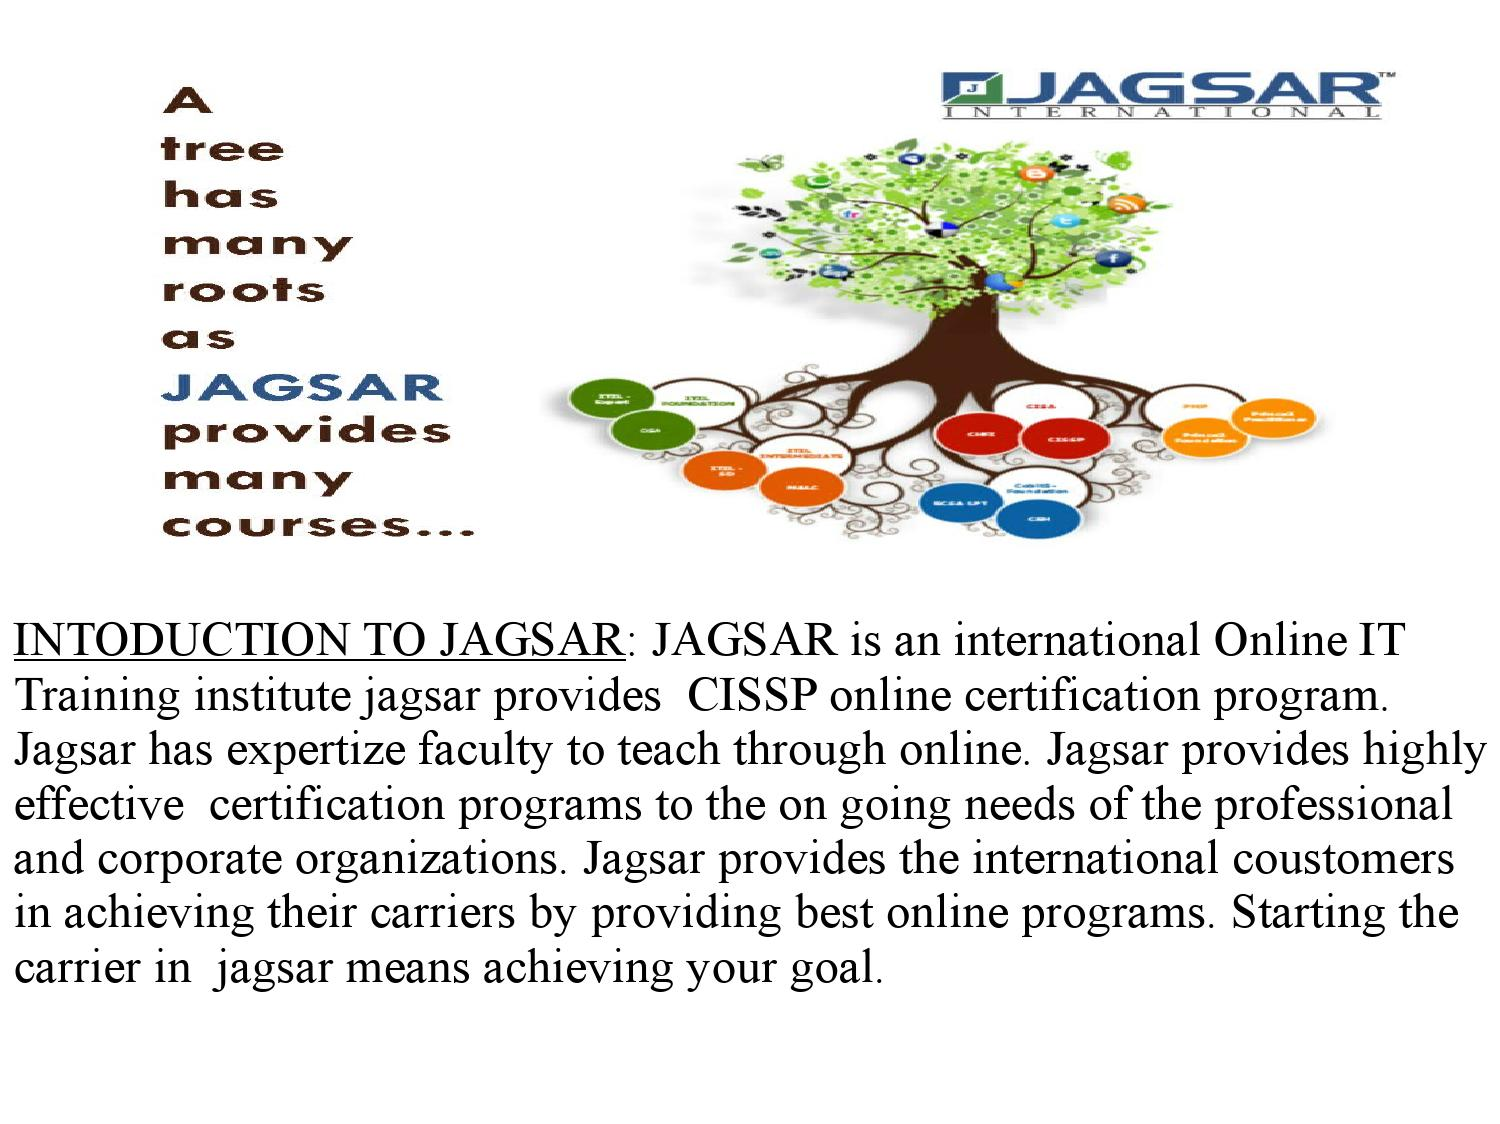 Jagsar cissp online it training at hyd by jagsar issuu xflitez Images